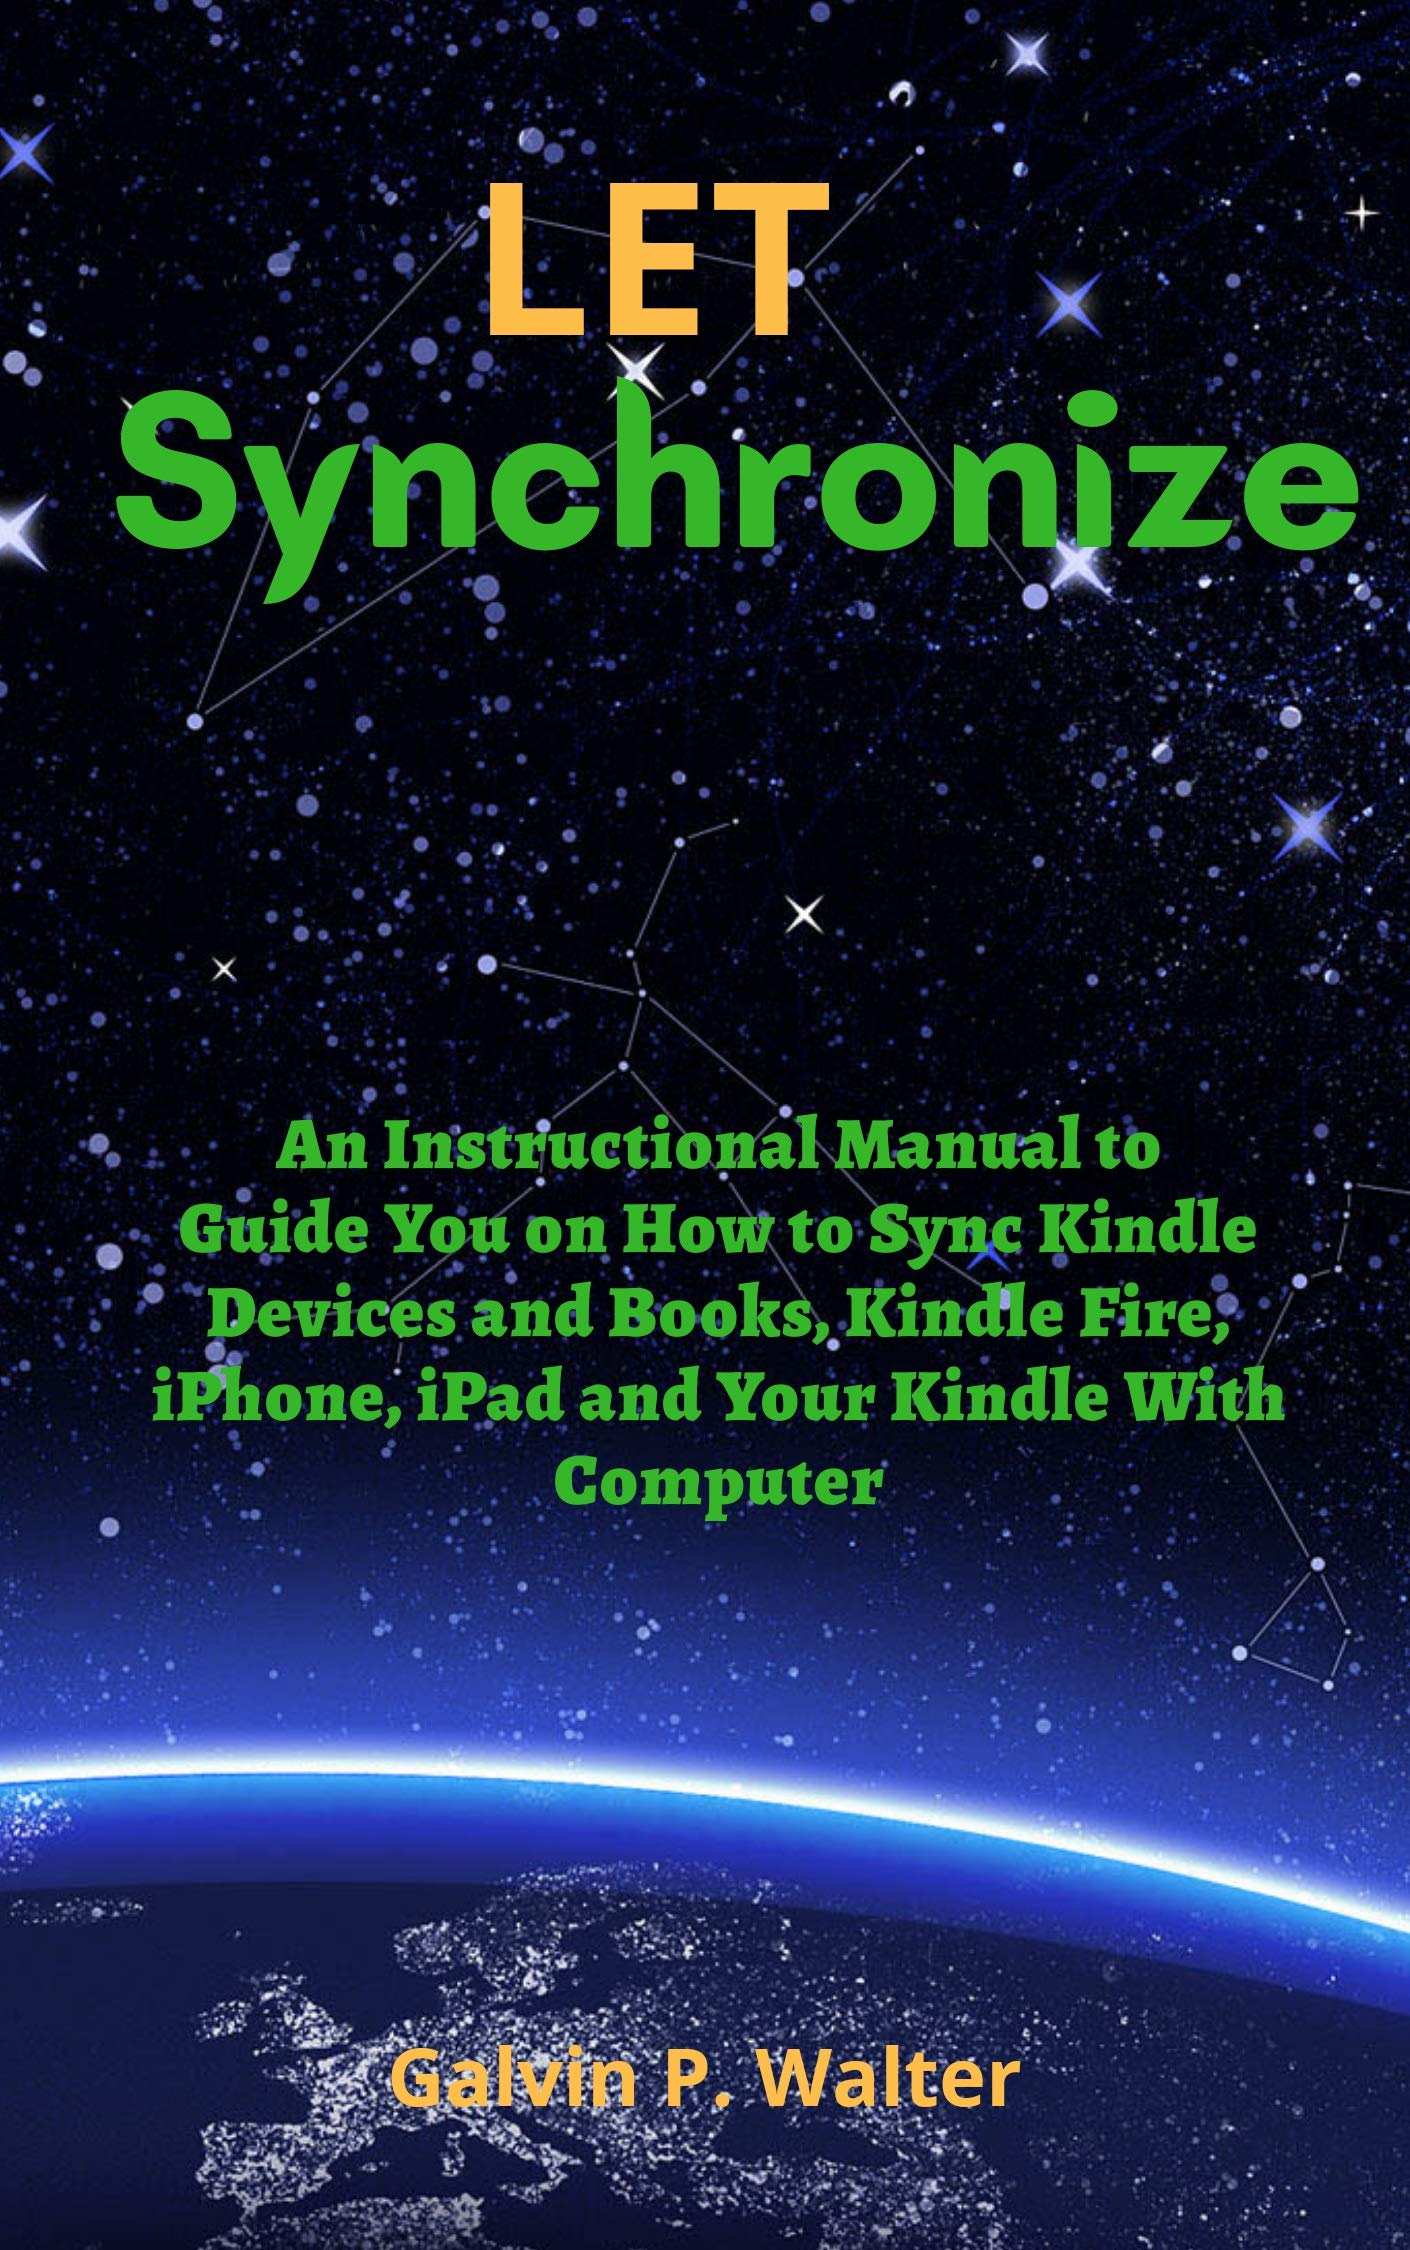 LET SYNCHRONIZE: An Instructional Manual to Guide You on How to Sync Kindle Devices and Books, Kindle Fire, iPhone, iPad and Your Kindle with Computer